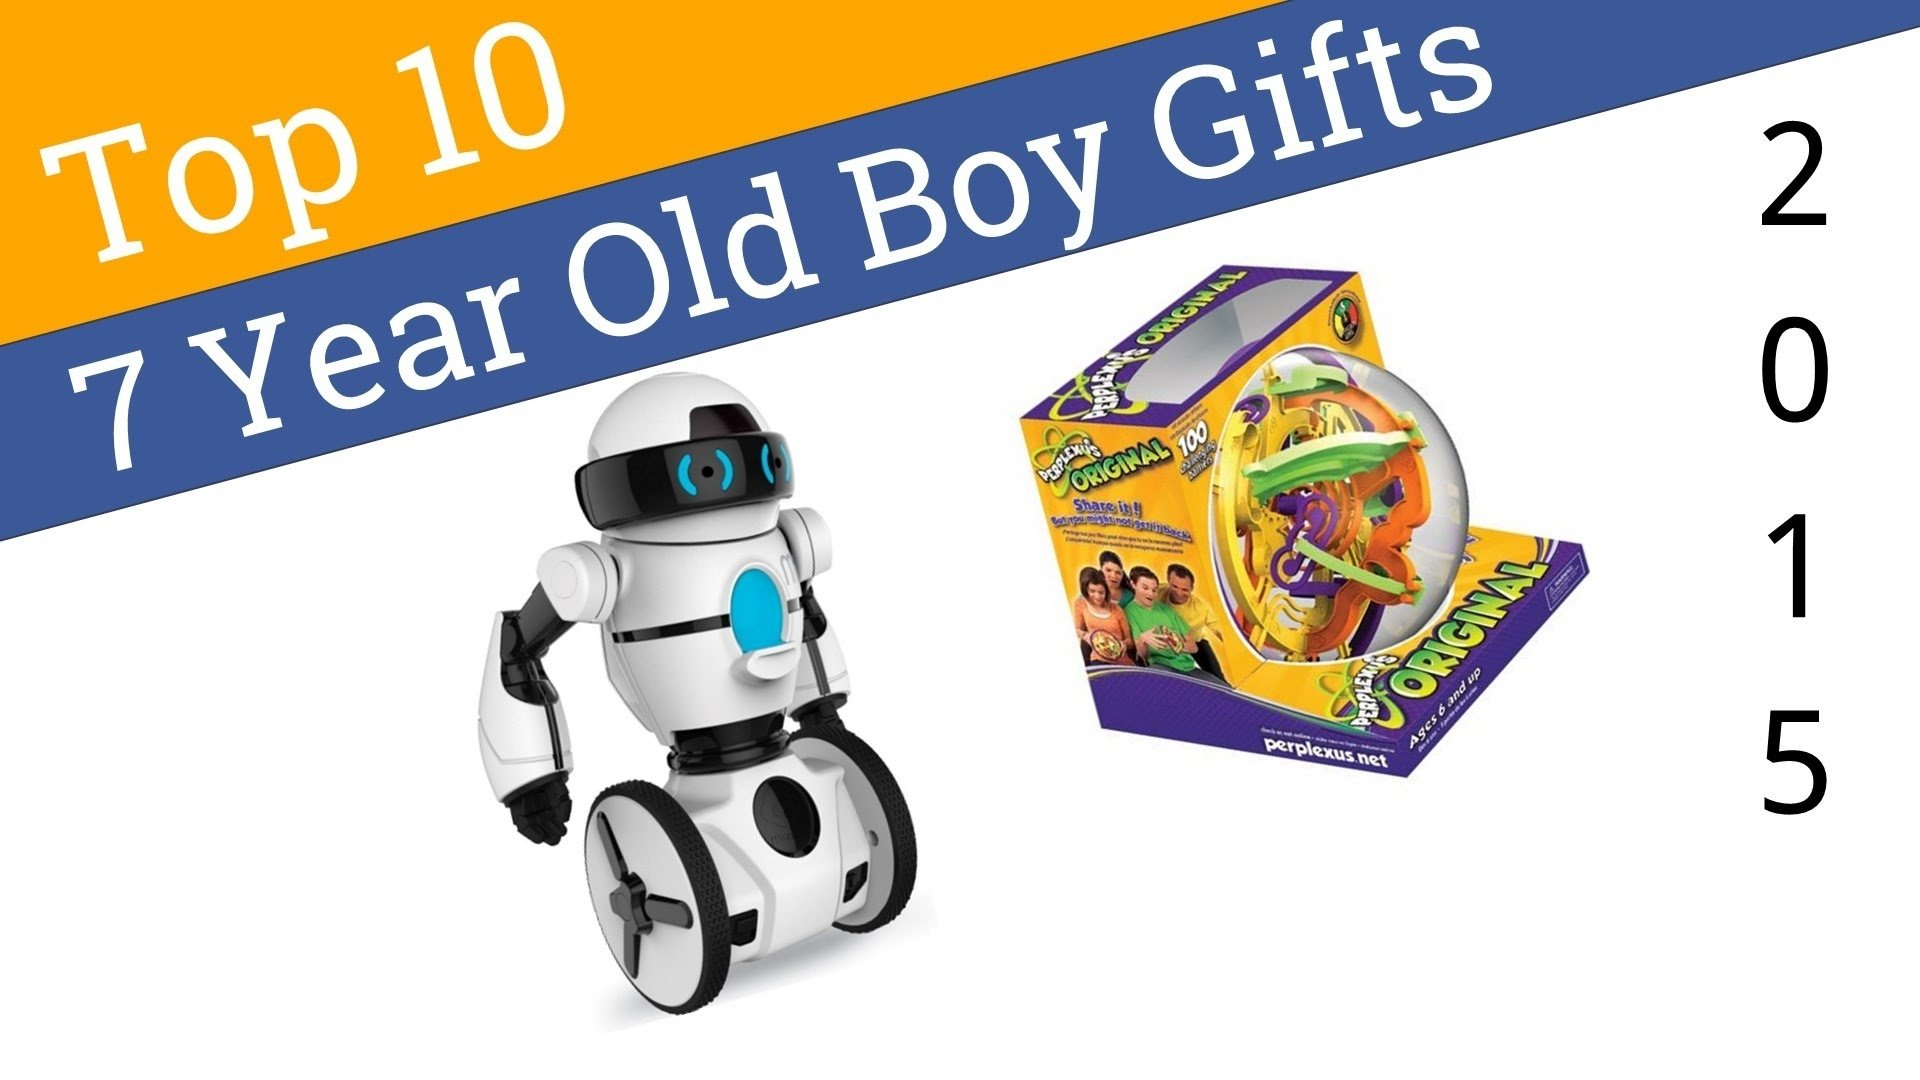 10 Perfect 4 Year Old Boy Christmas Gift Ideas